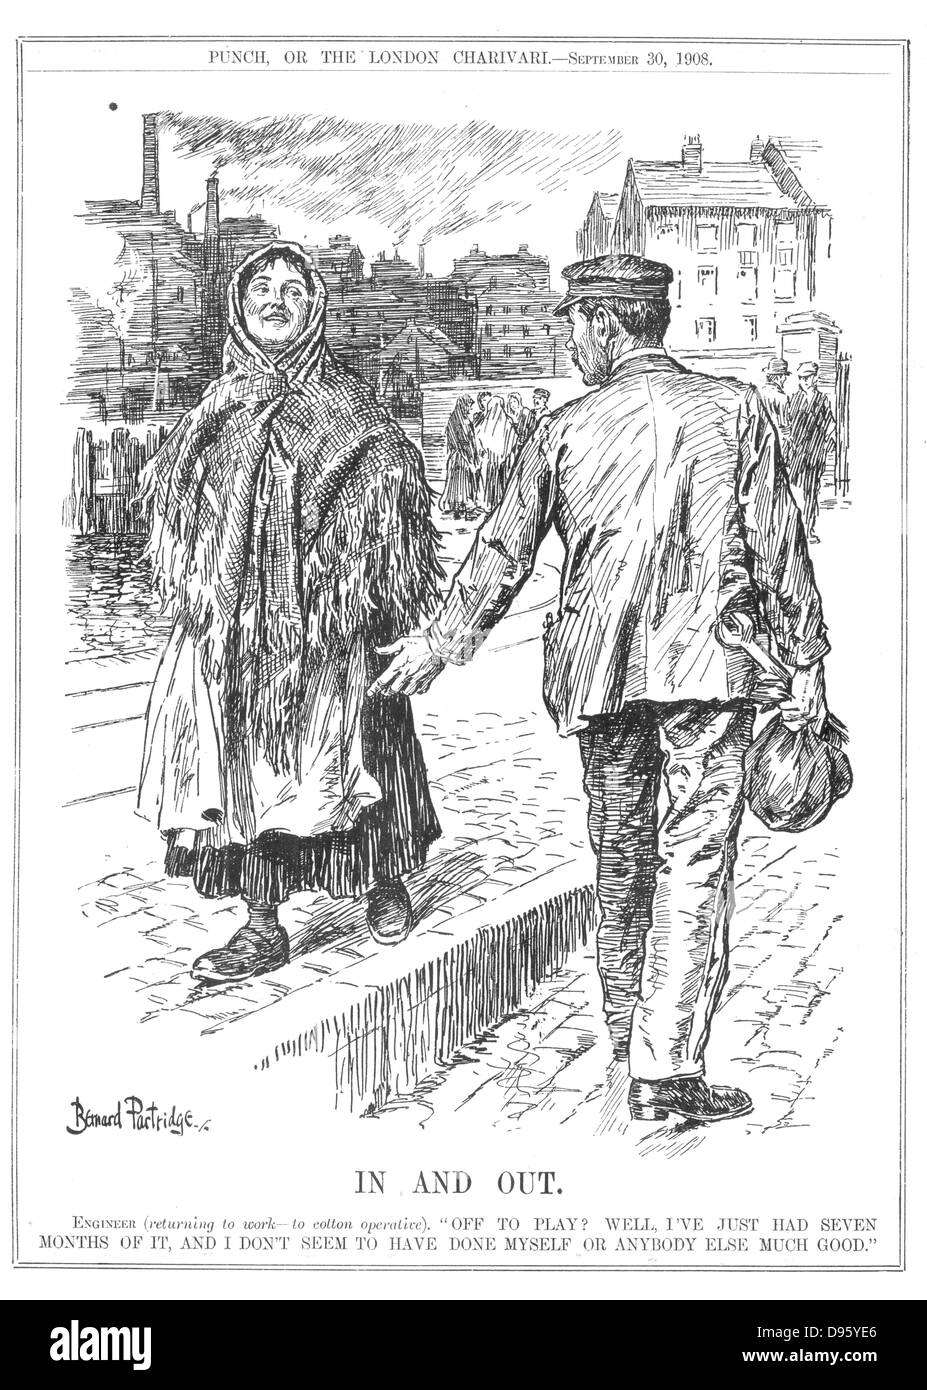 Industrial disputes. Engineer returning to work after seven months, advising a Lancashire cotton spinner that she - Stock Image